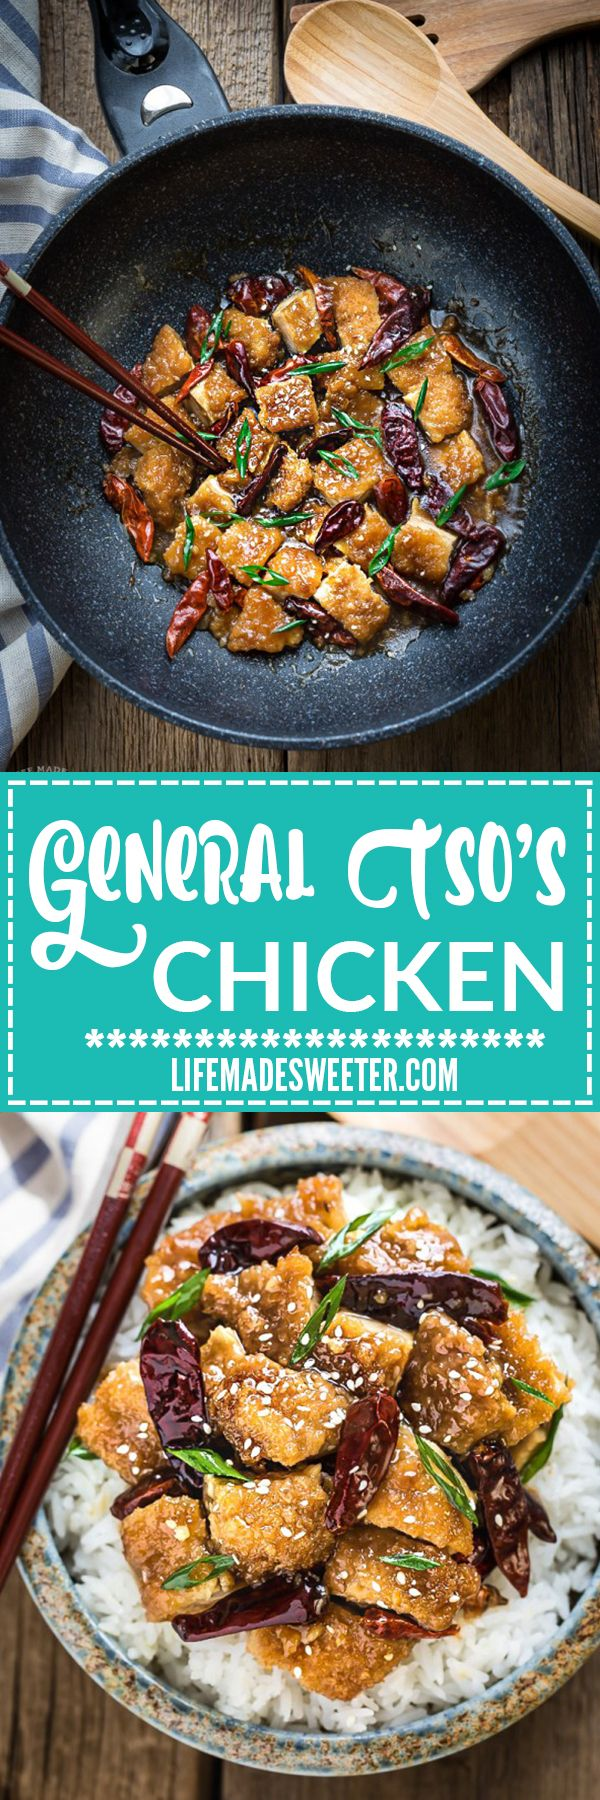 General Tso's Chicken is the perfect homemade dish to satisfy that Chinese takeout craving! Best of all, it's easy to make and so much better for you than the restaurant version! Weekly meal prep for the week and leftovers reheat beautifully and make great lunch bowls for work or school.